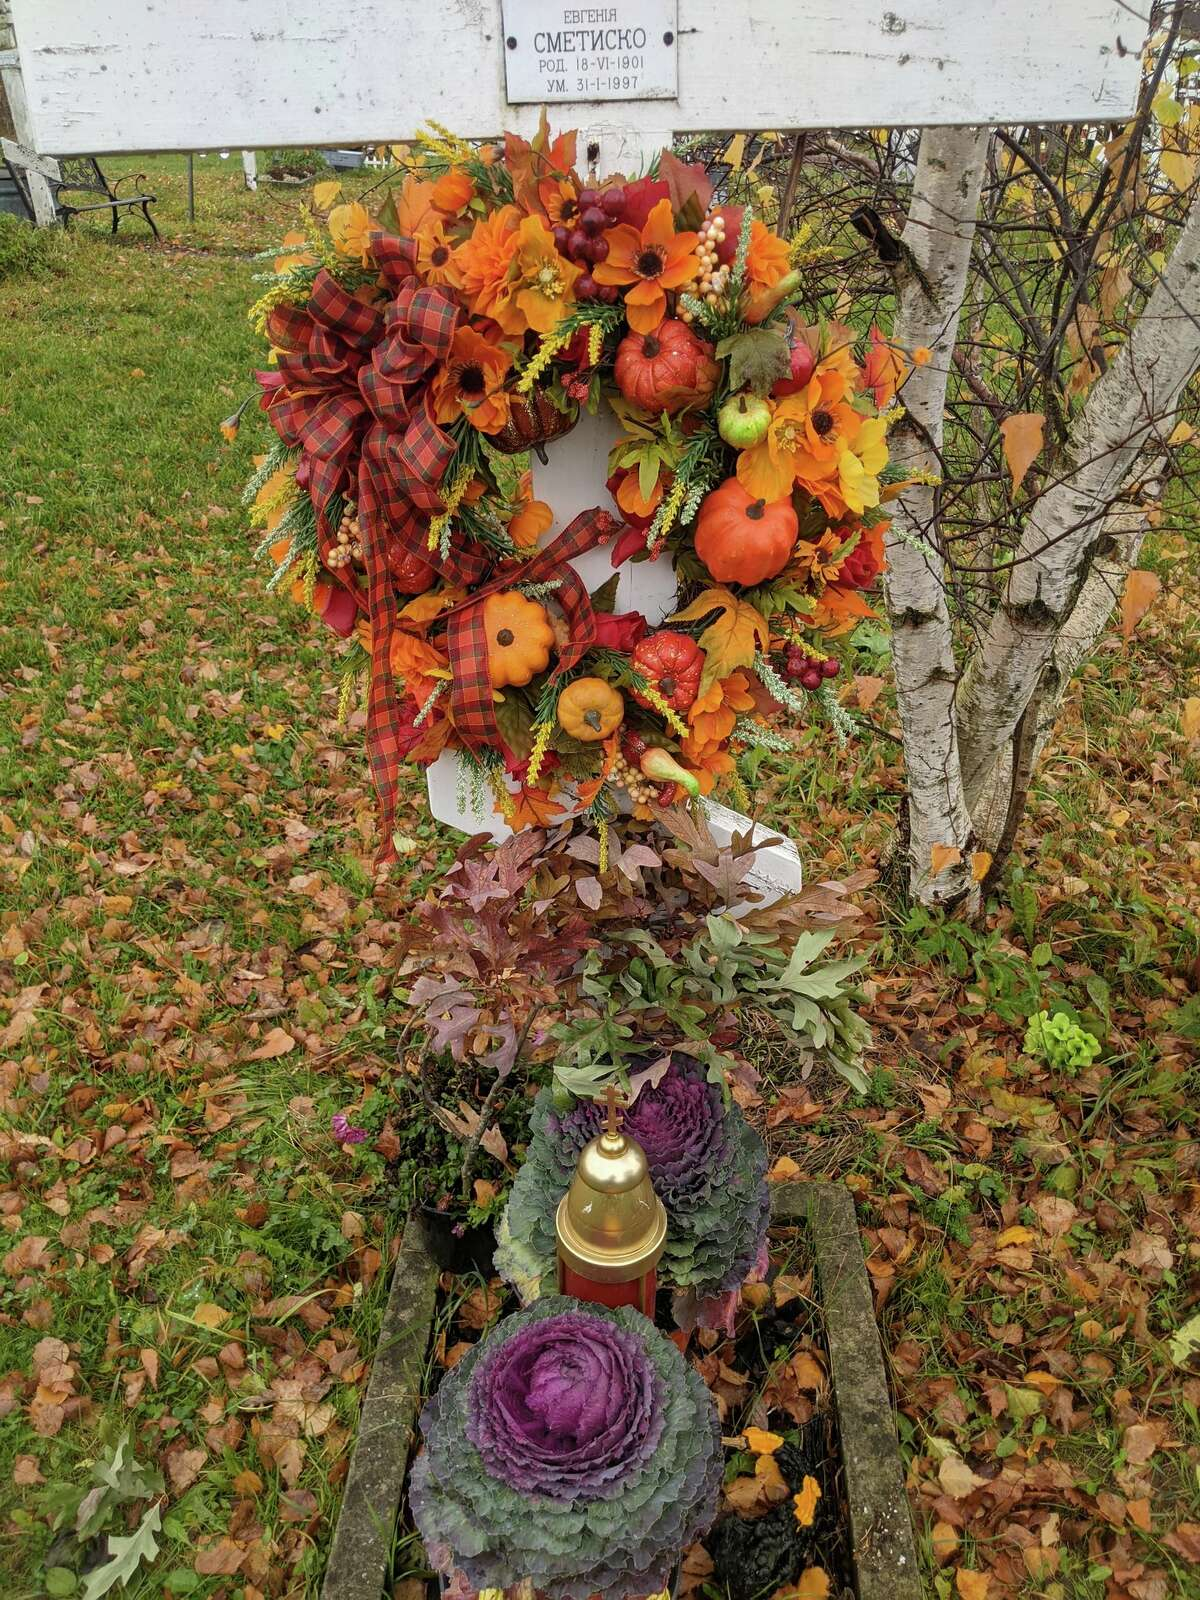 Many graves in Jordanville's Russian Orthodox cemetery were decorated with autumn adornments like purple winter cabbage, red and orange leaves, even pumpkins and gourds.